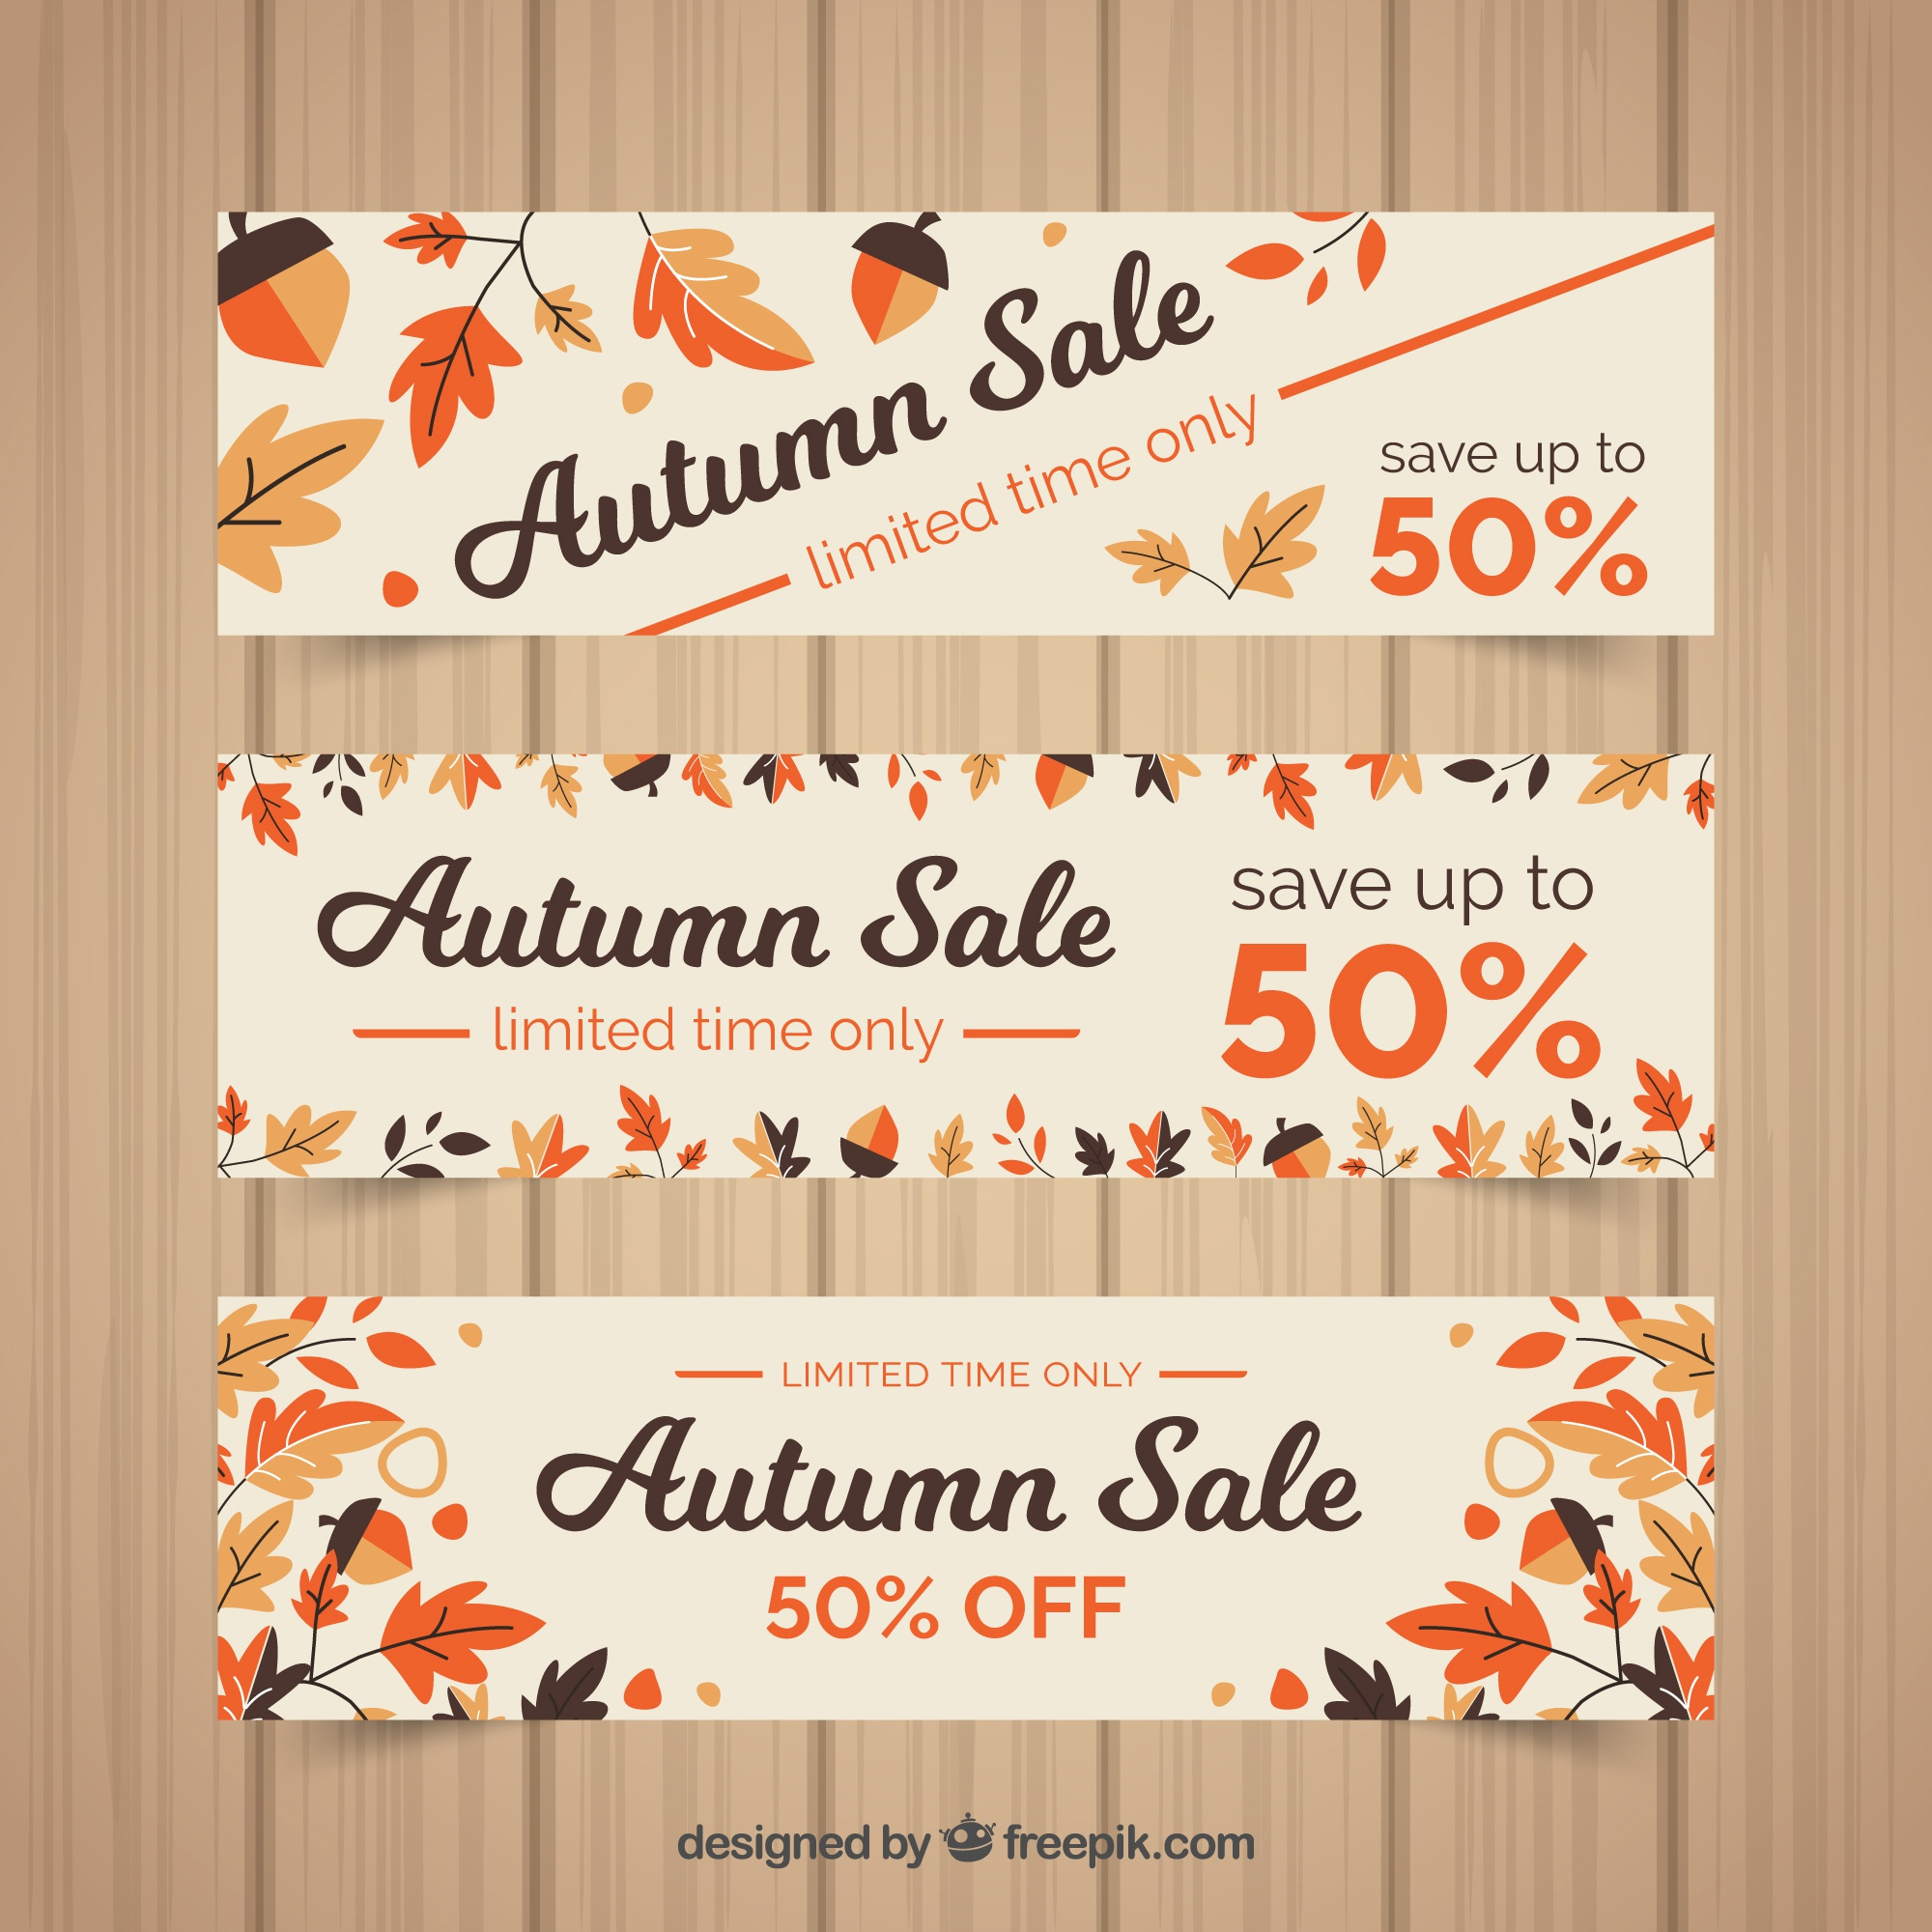 3 discount banners for autumn, flat style